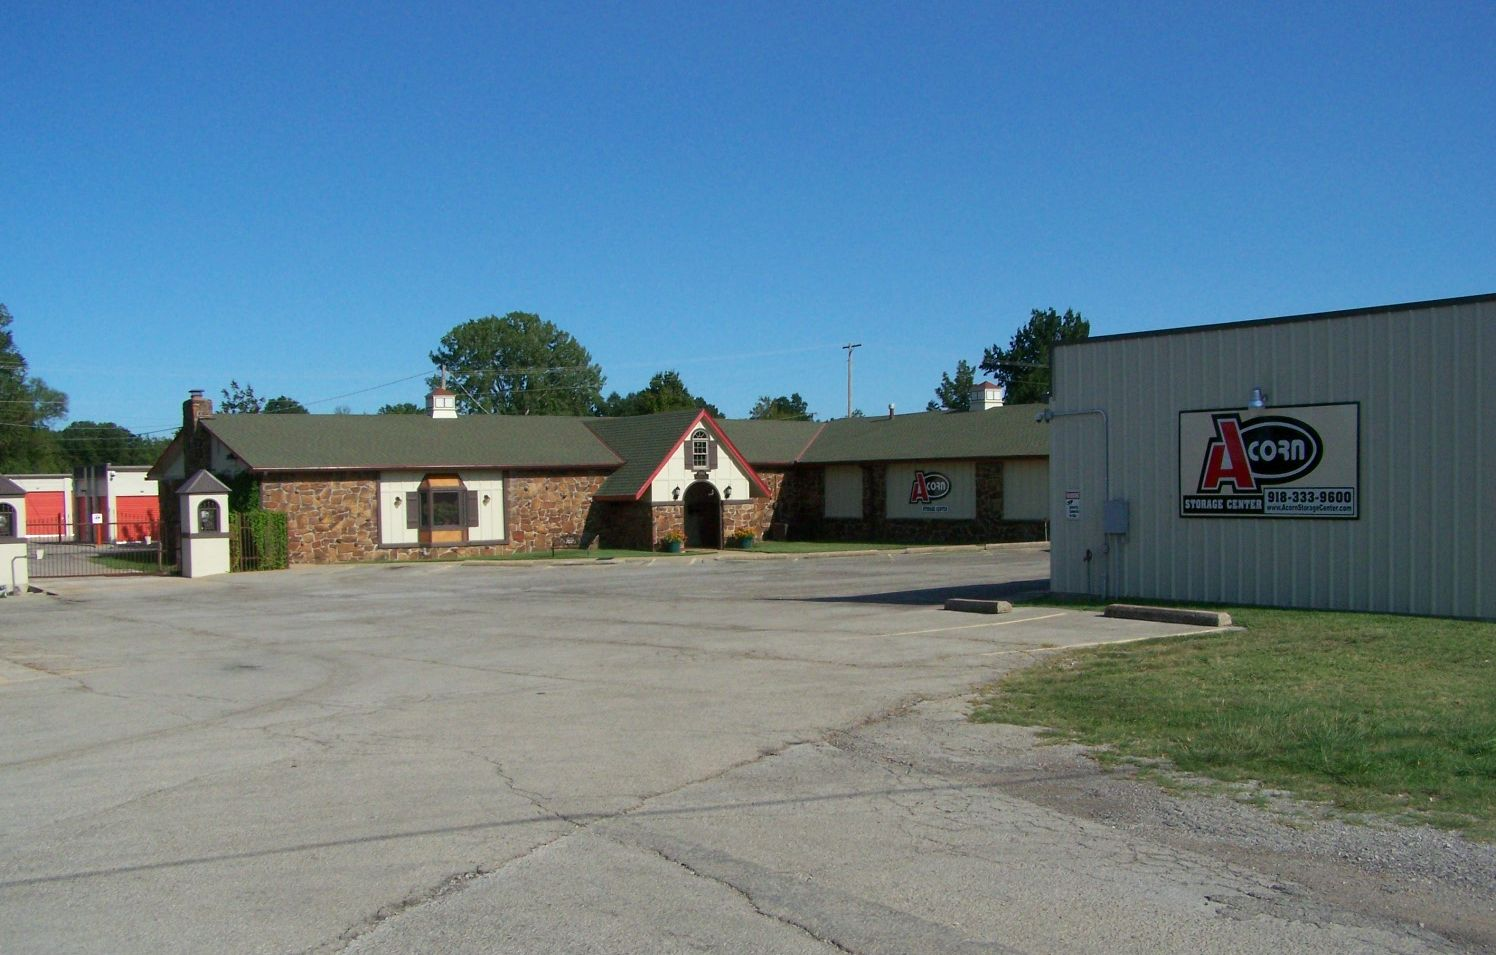 Storage Units In Bartlesville Ok 74006 Acorn Storage